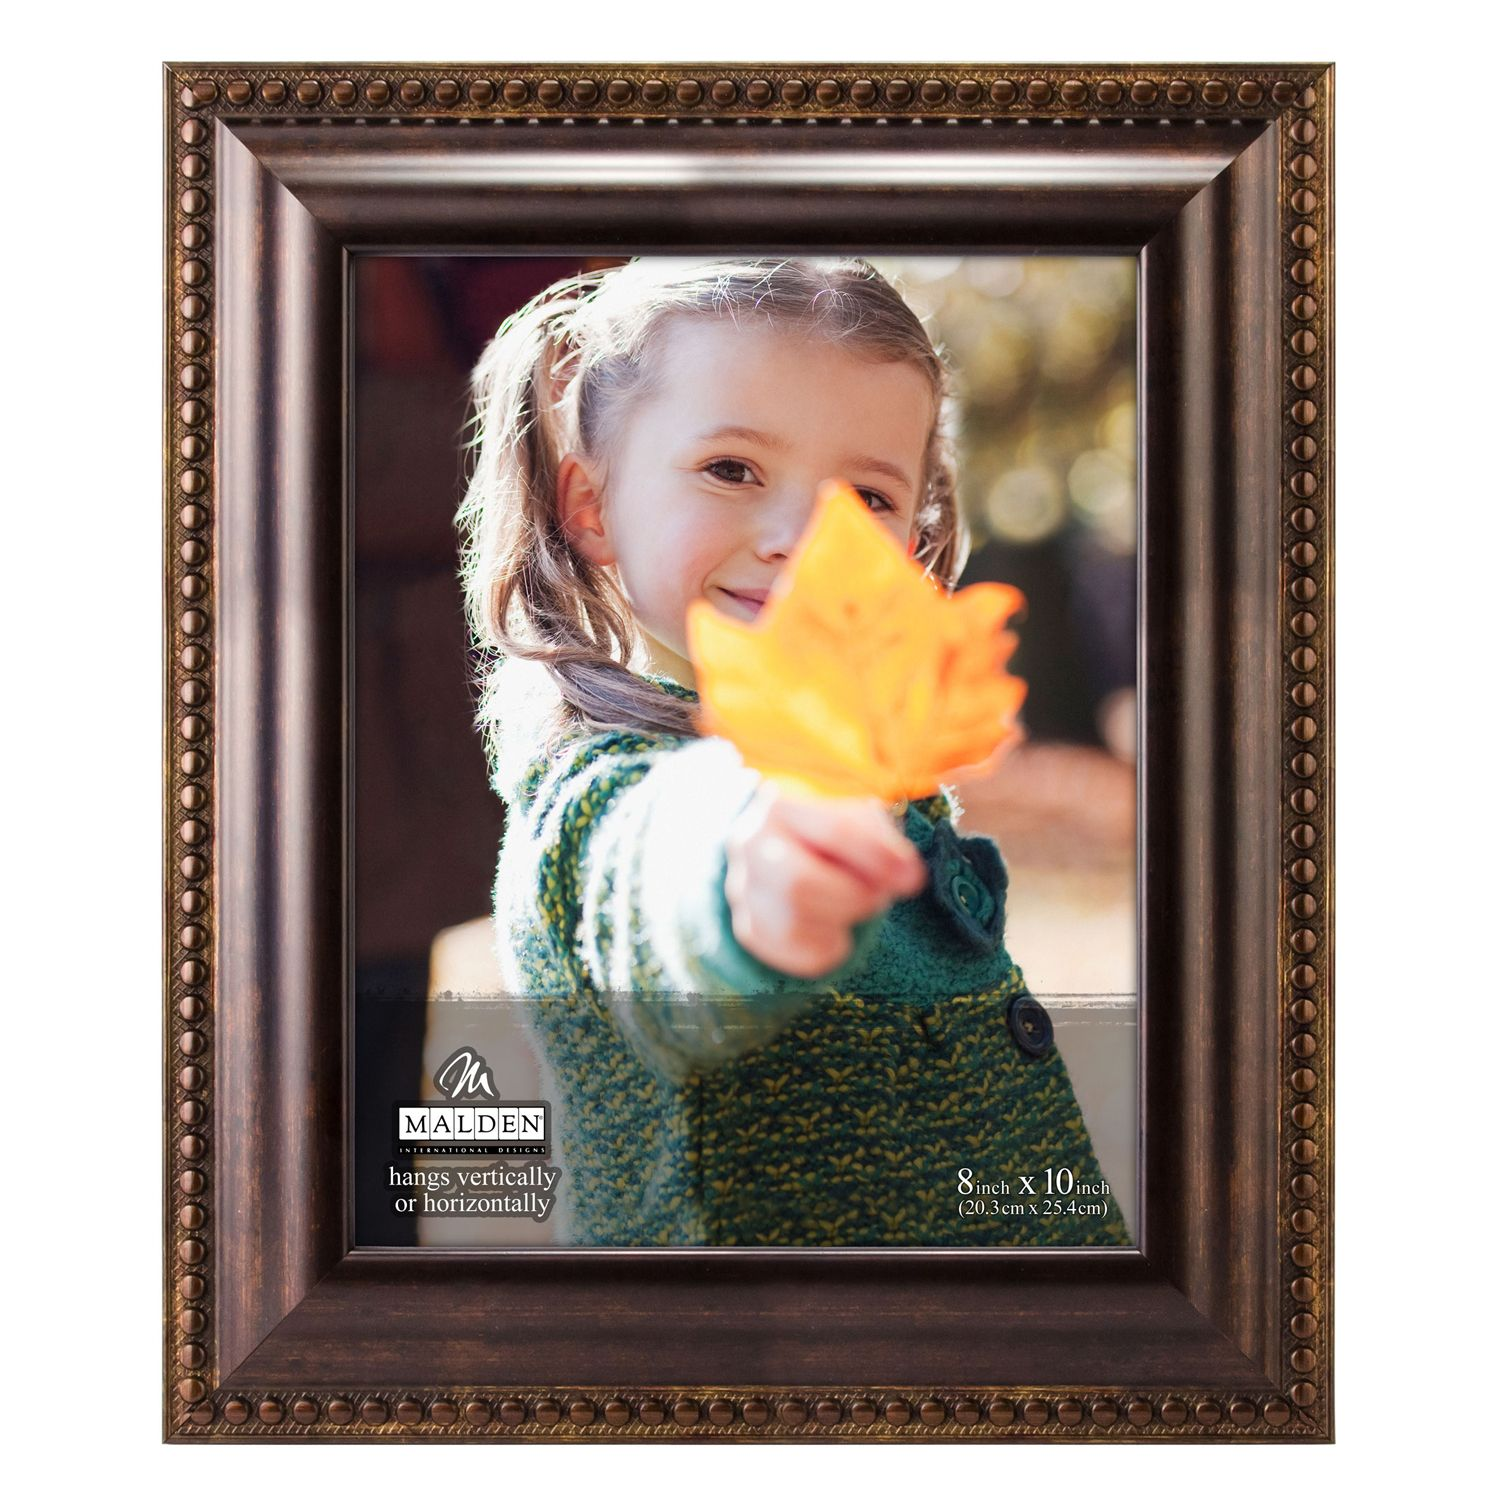 Malden wood frames home decor kohls jeuxipadfo Choice Image